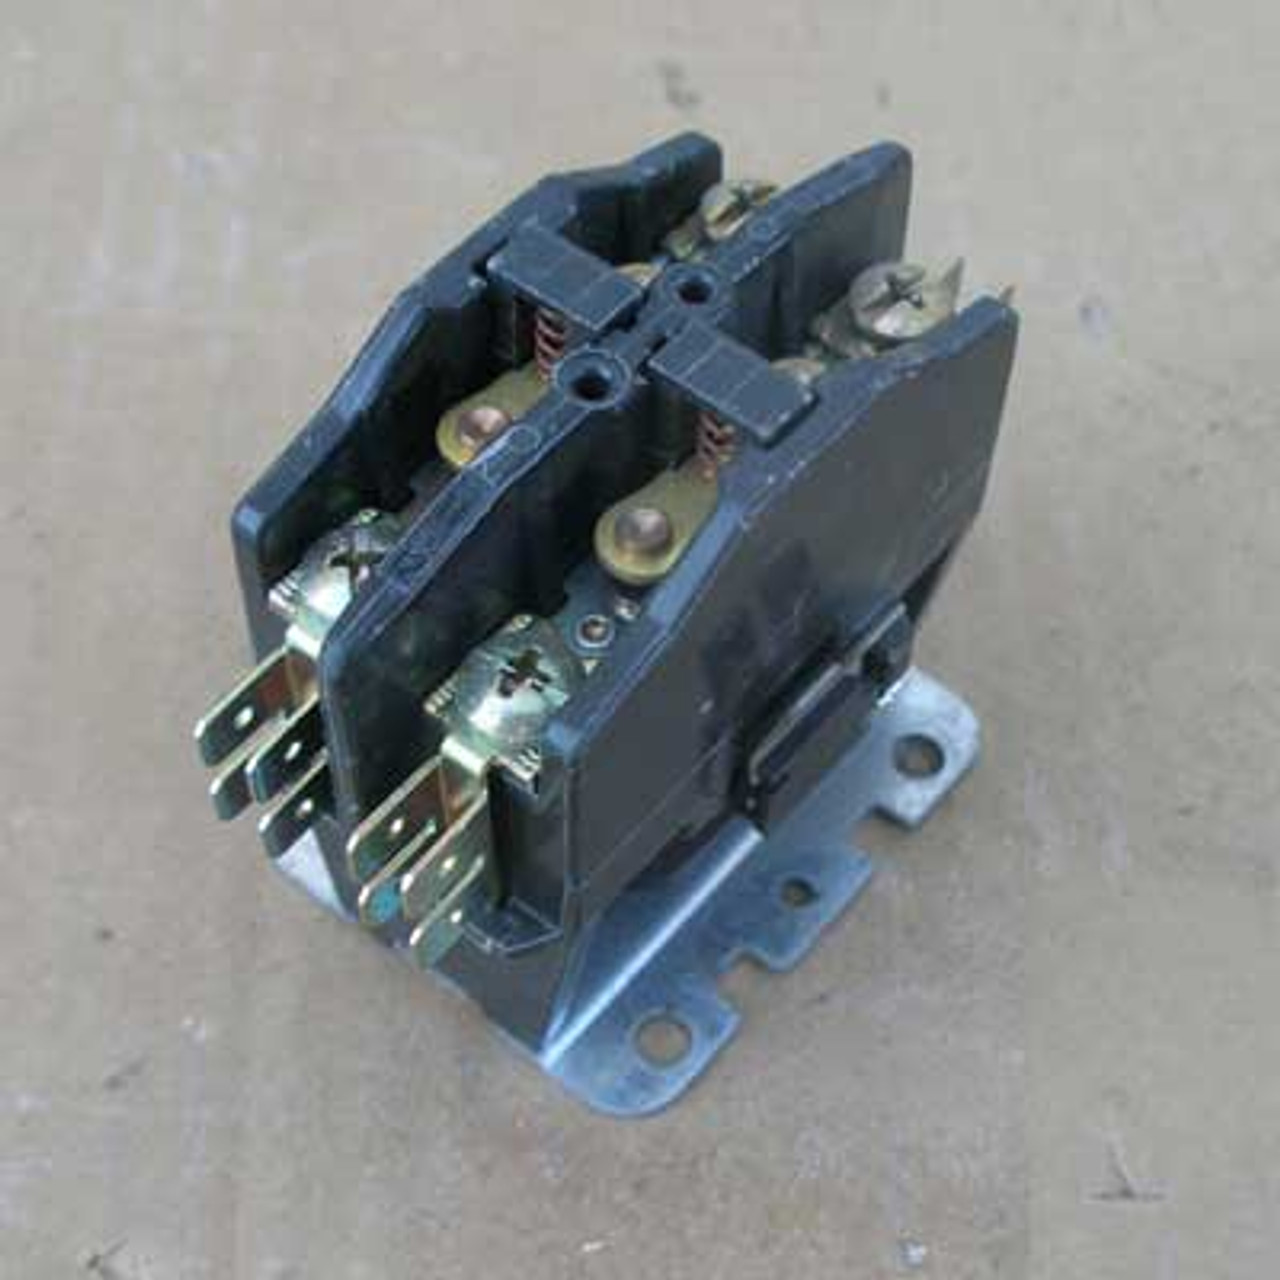 Furnas 45CG20AJB669R 2 Pole 24v Coil Series C Contactor Used